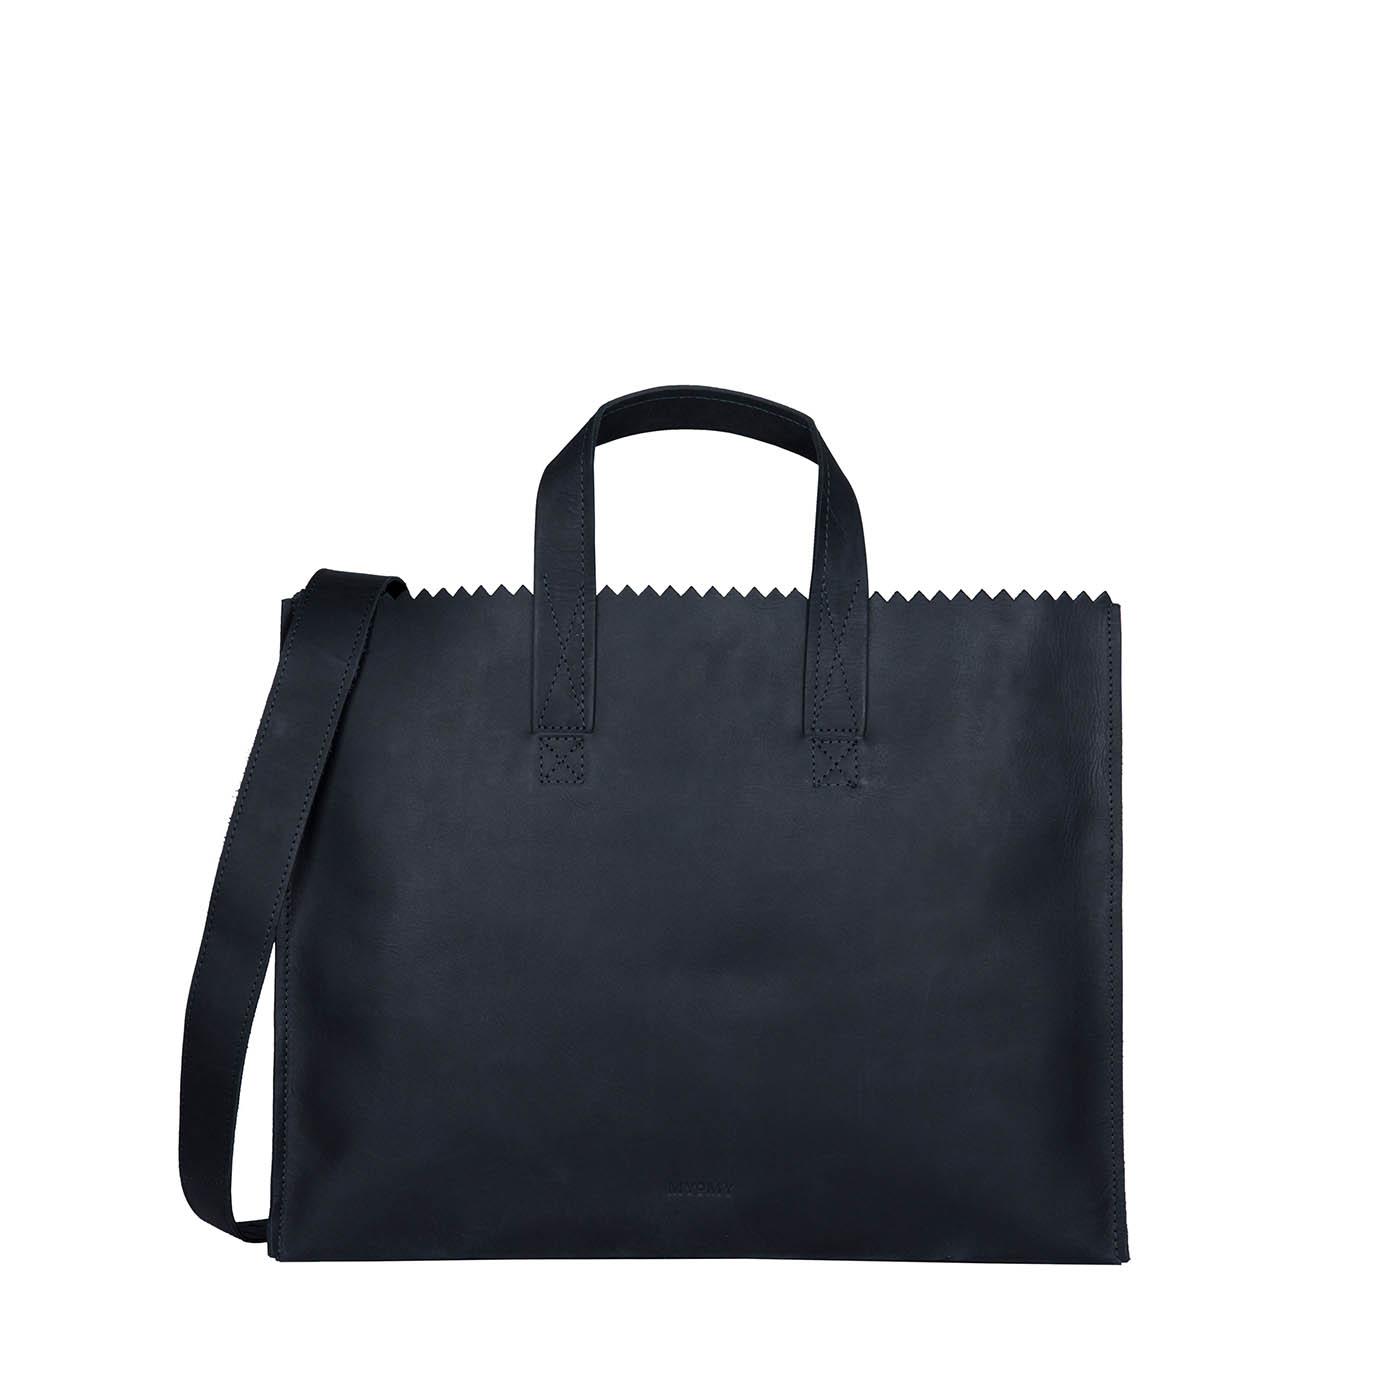 MY PAPER BAG Business bag - hunter off-black